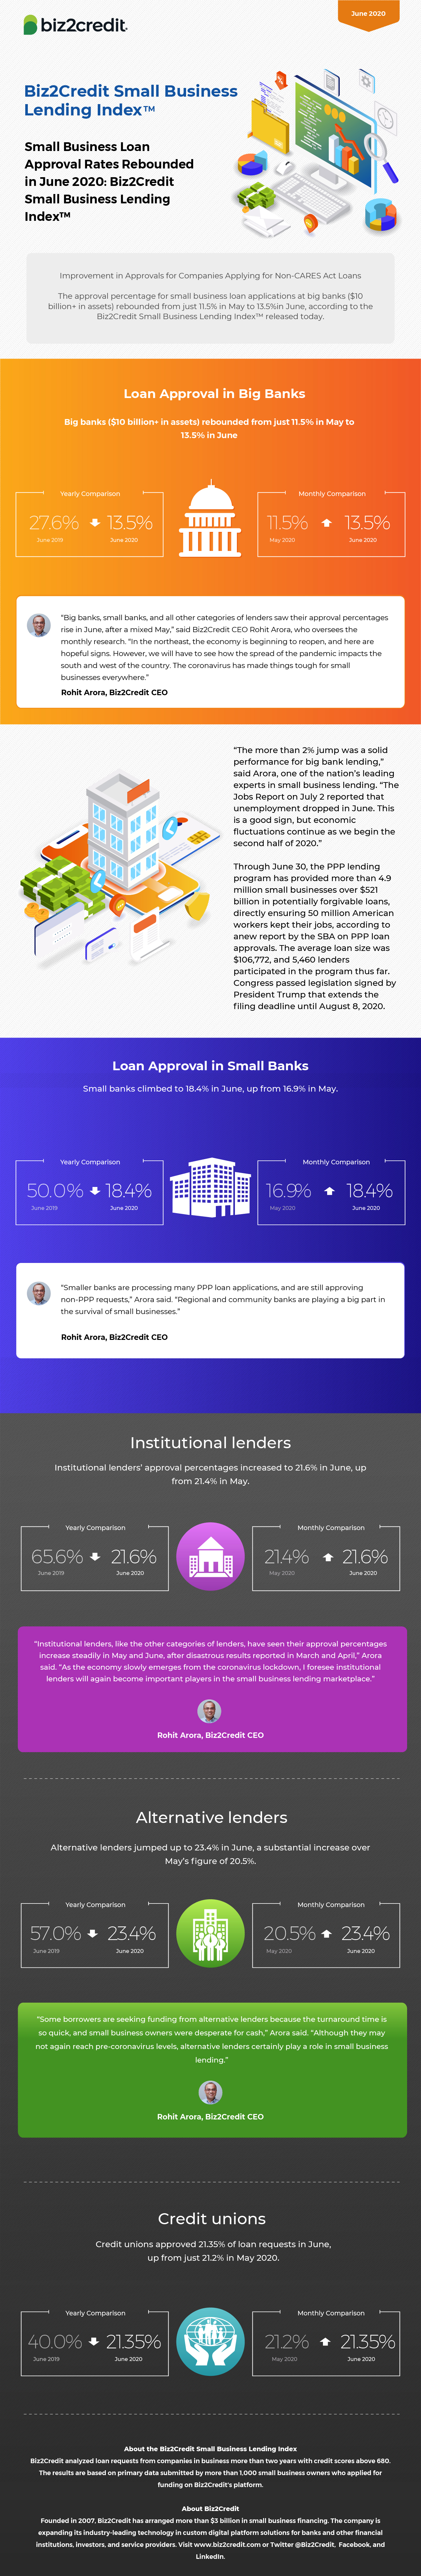 June 2020 Lending Index Infographic